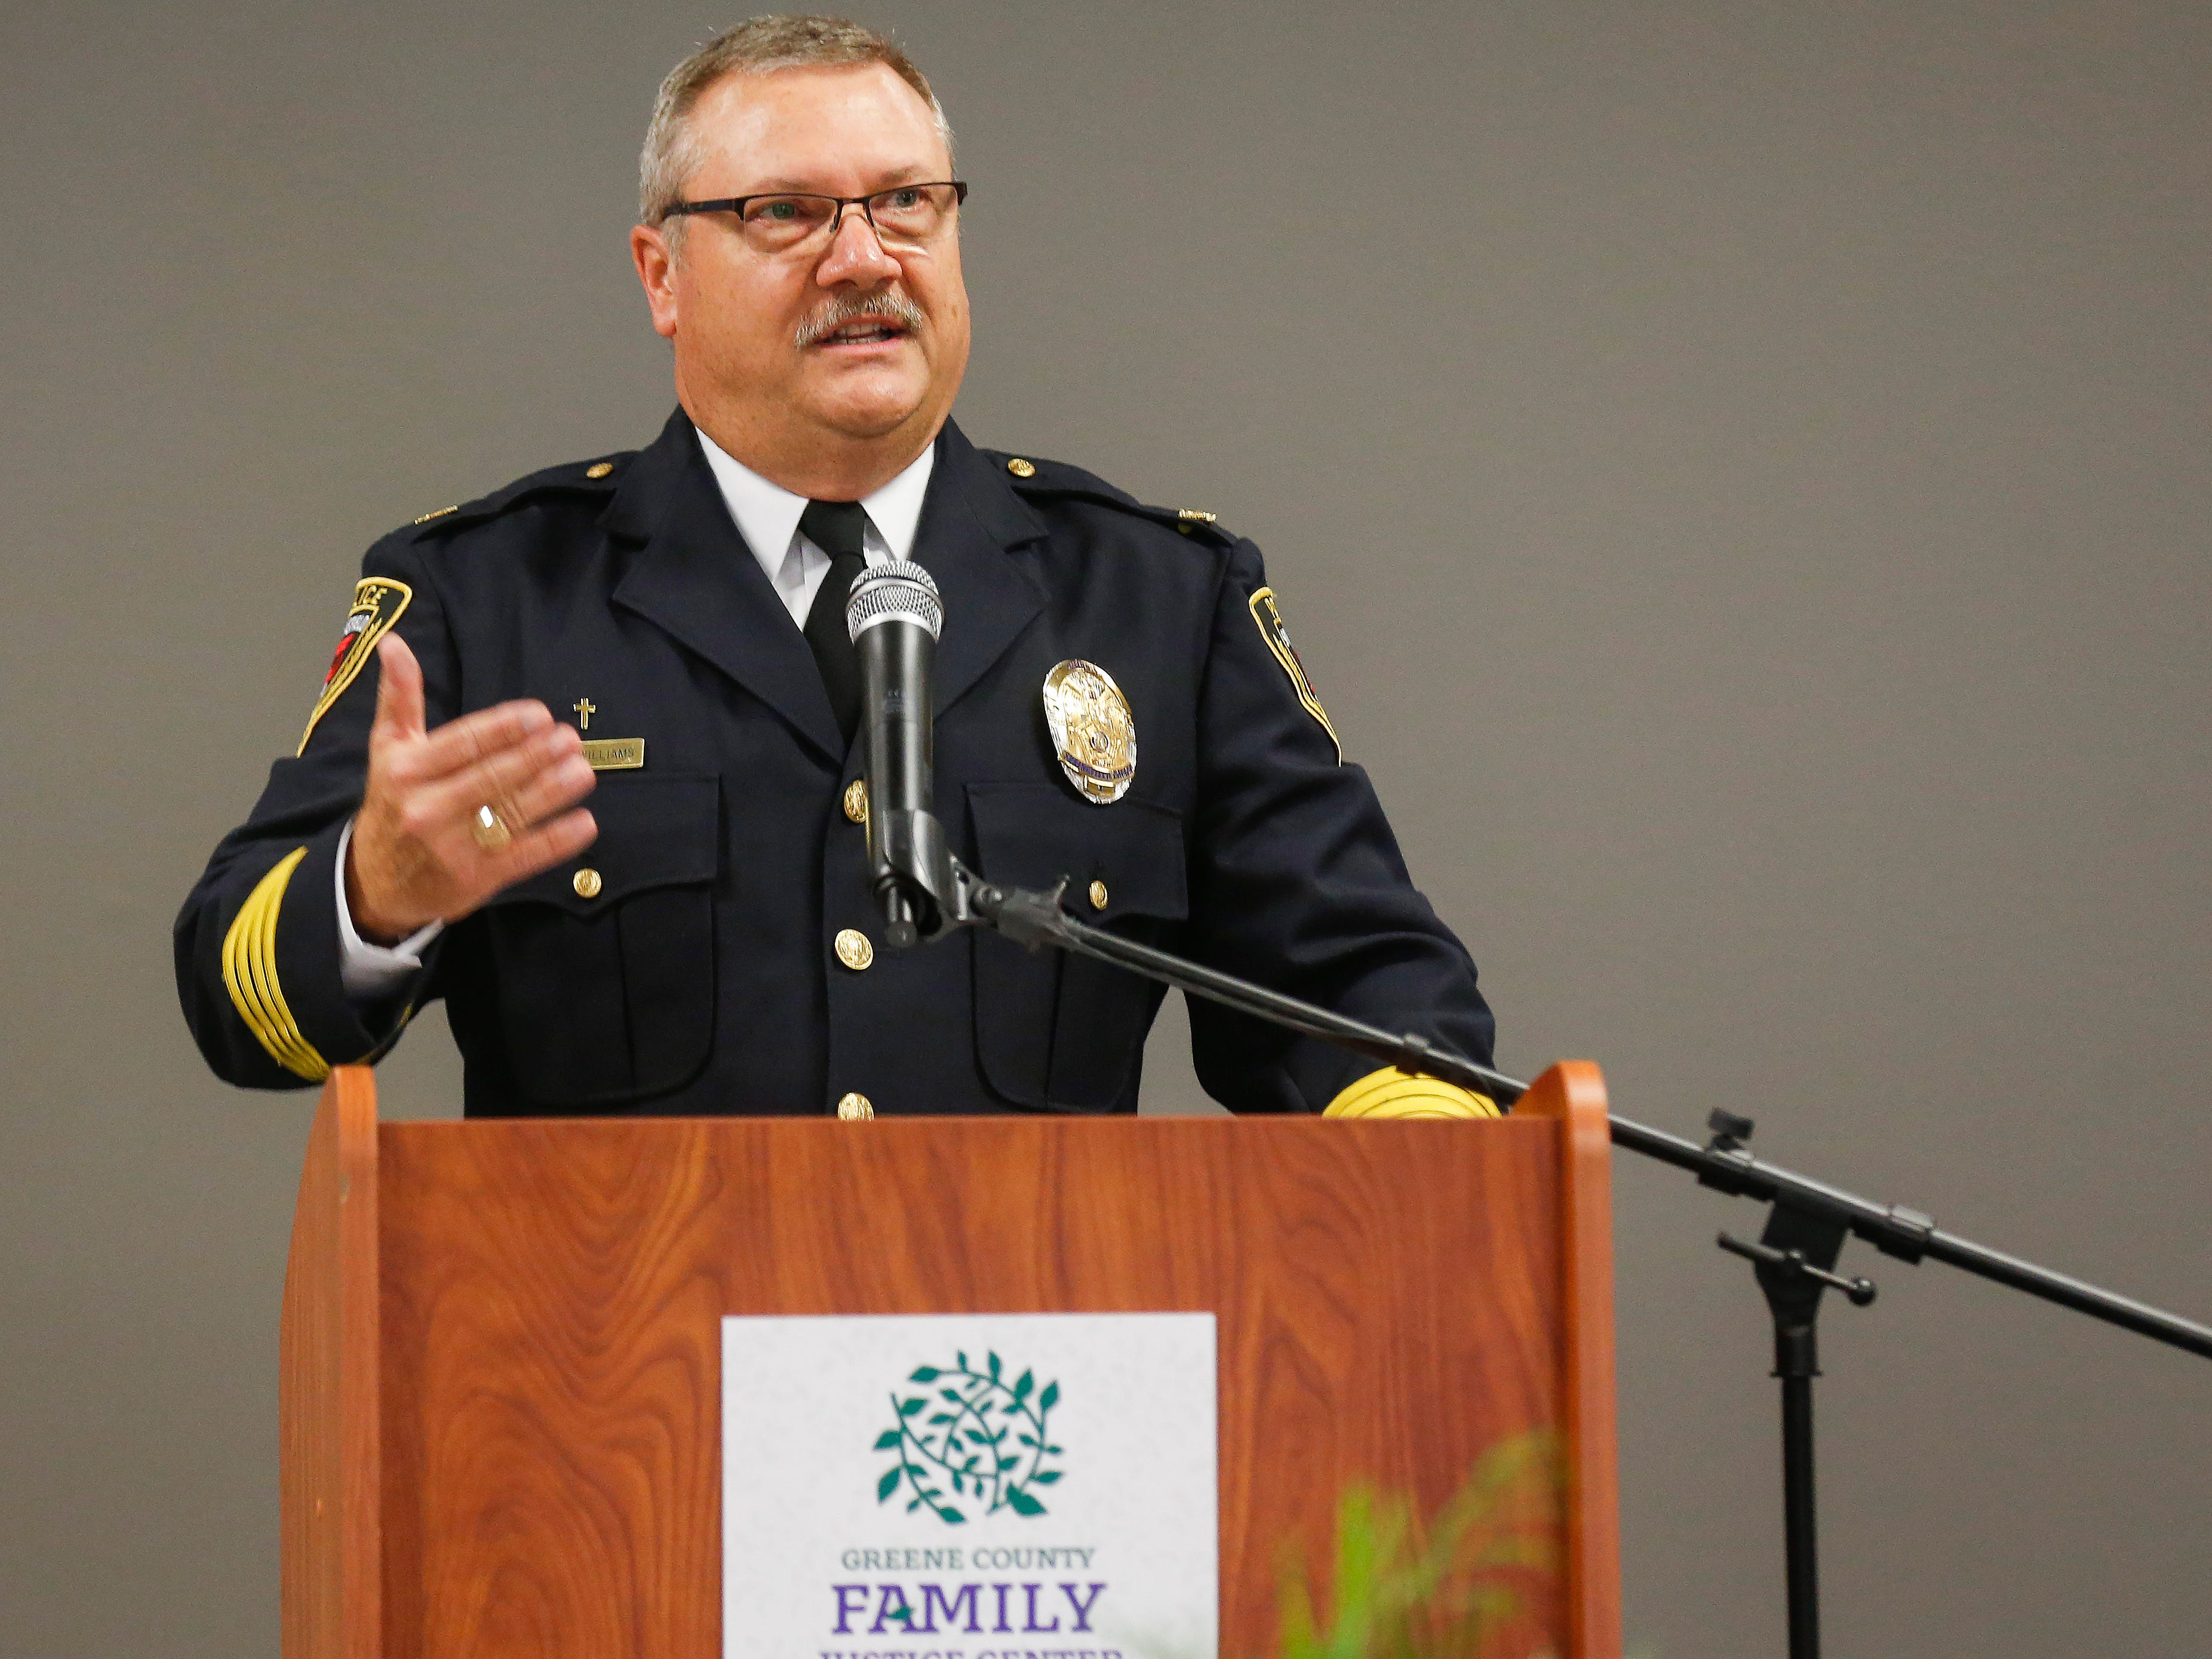 Springfield Police Chief Paul Williams speaks during the ribbon cutting ceremony for the Family Justice Center on Monday, Oct. 1, 2018.